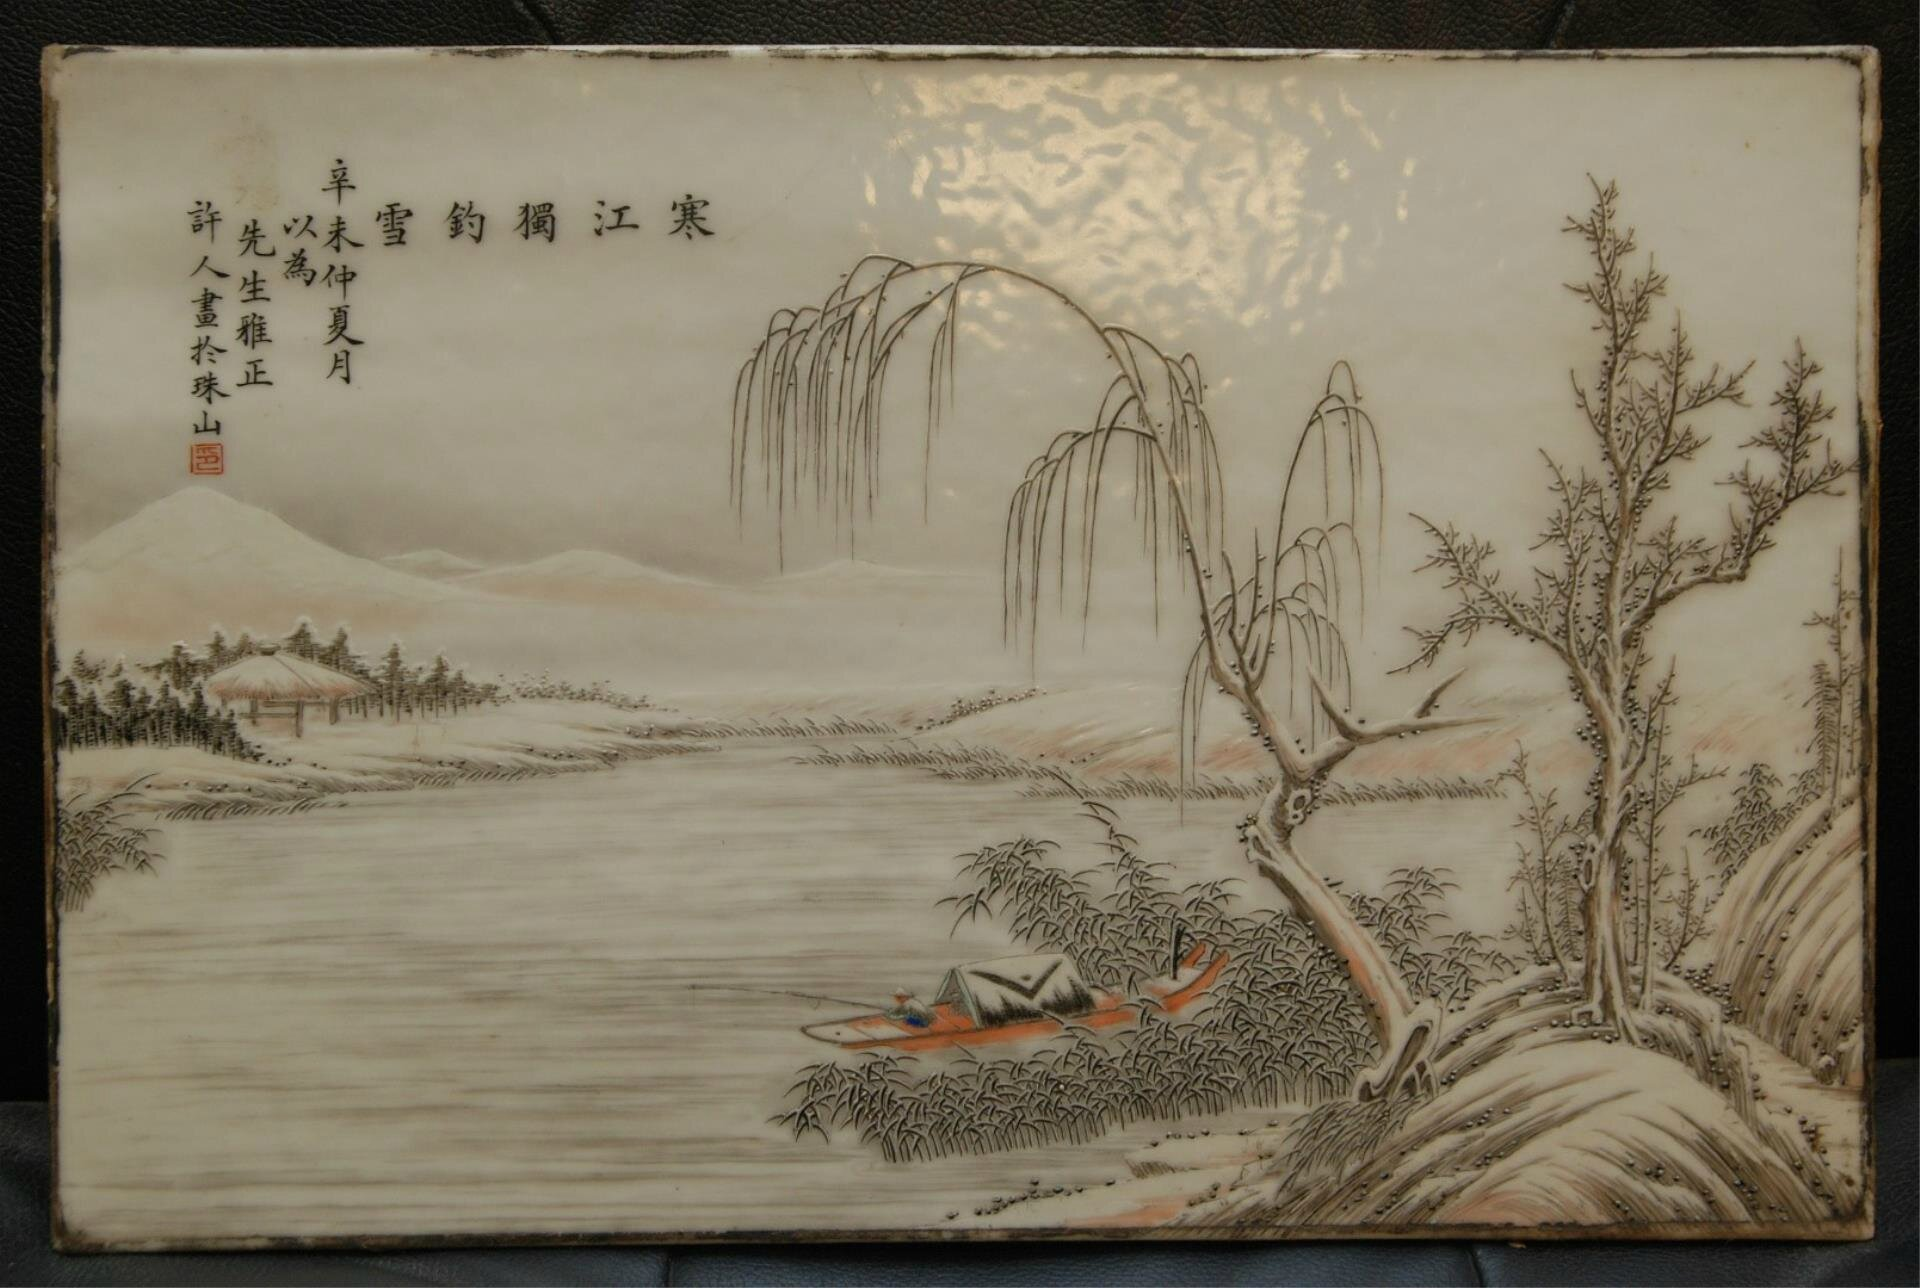 He Xu Ren Chinese hand painted porcelain plaque. Estimate $4000-$6000. Sold for $4,719. Elite Decorative Arts.